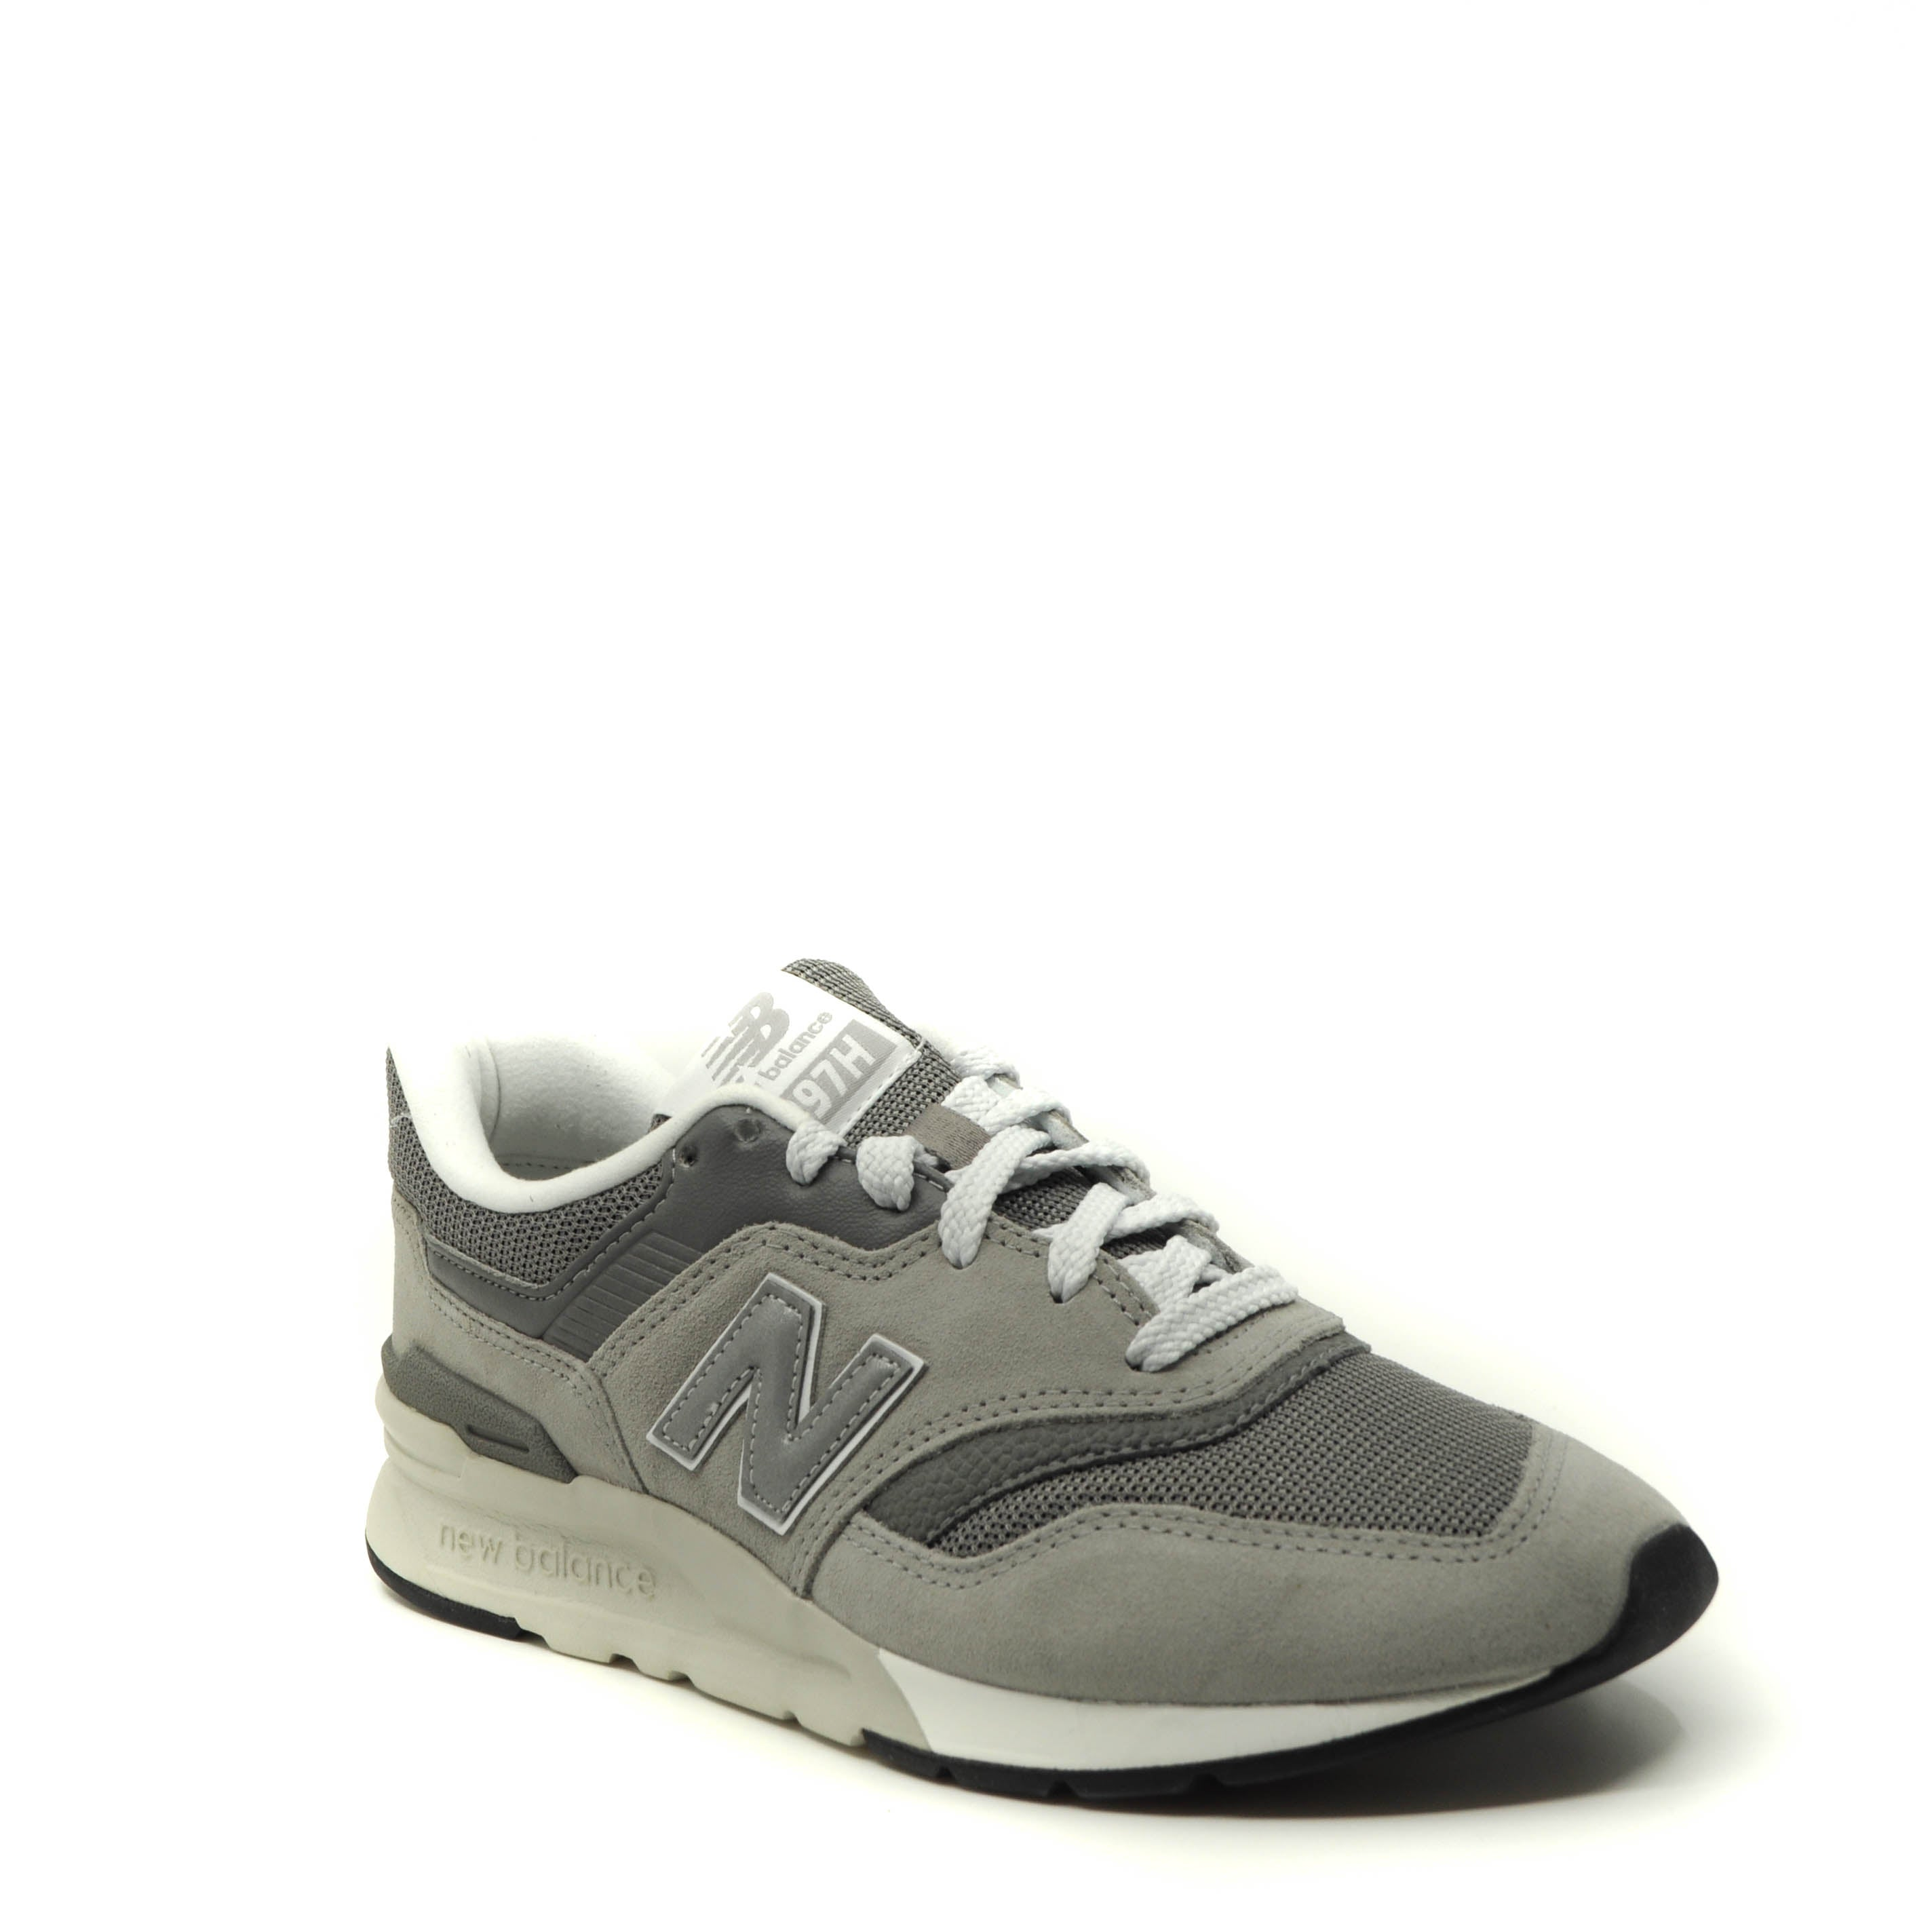 grey shoes New balance